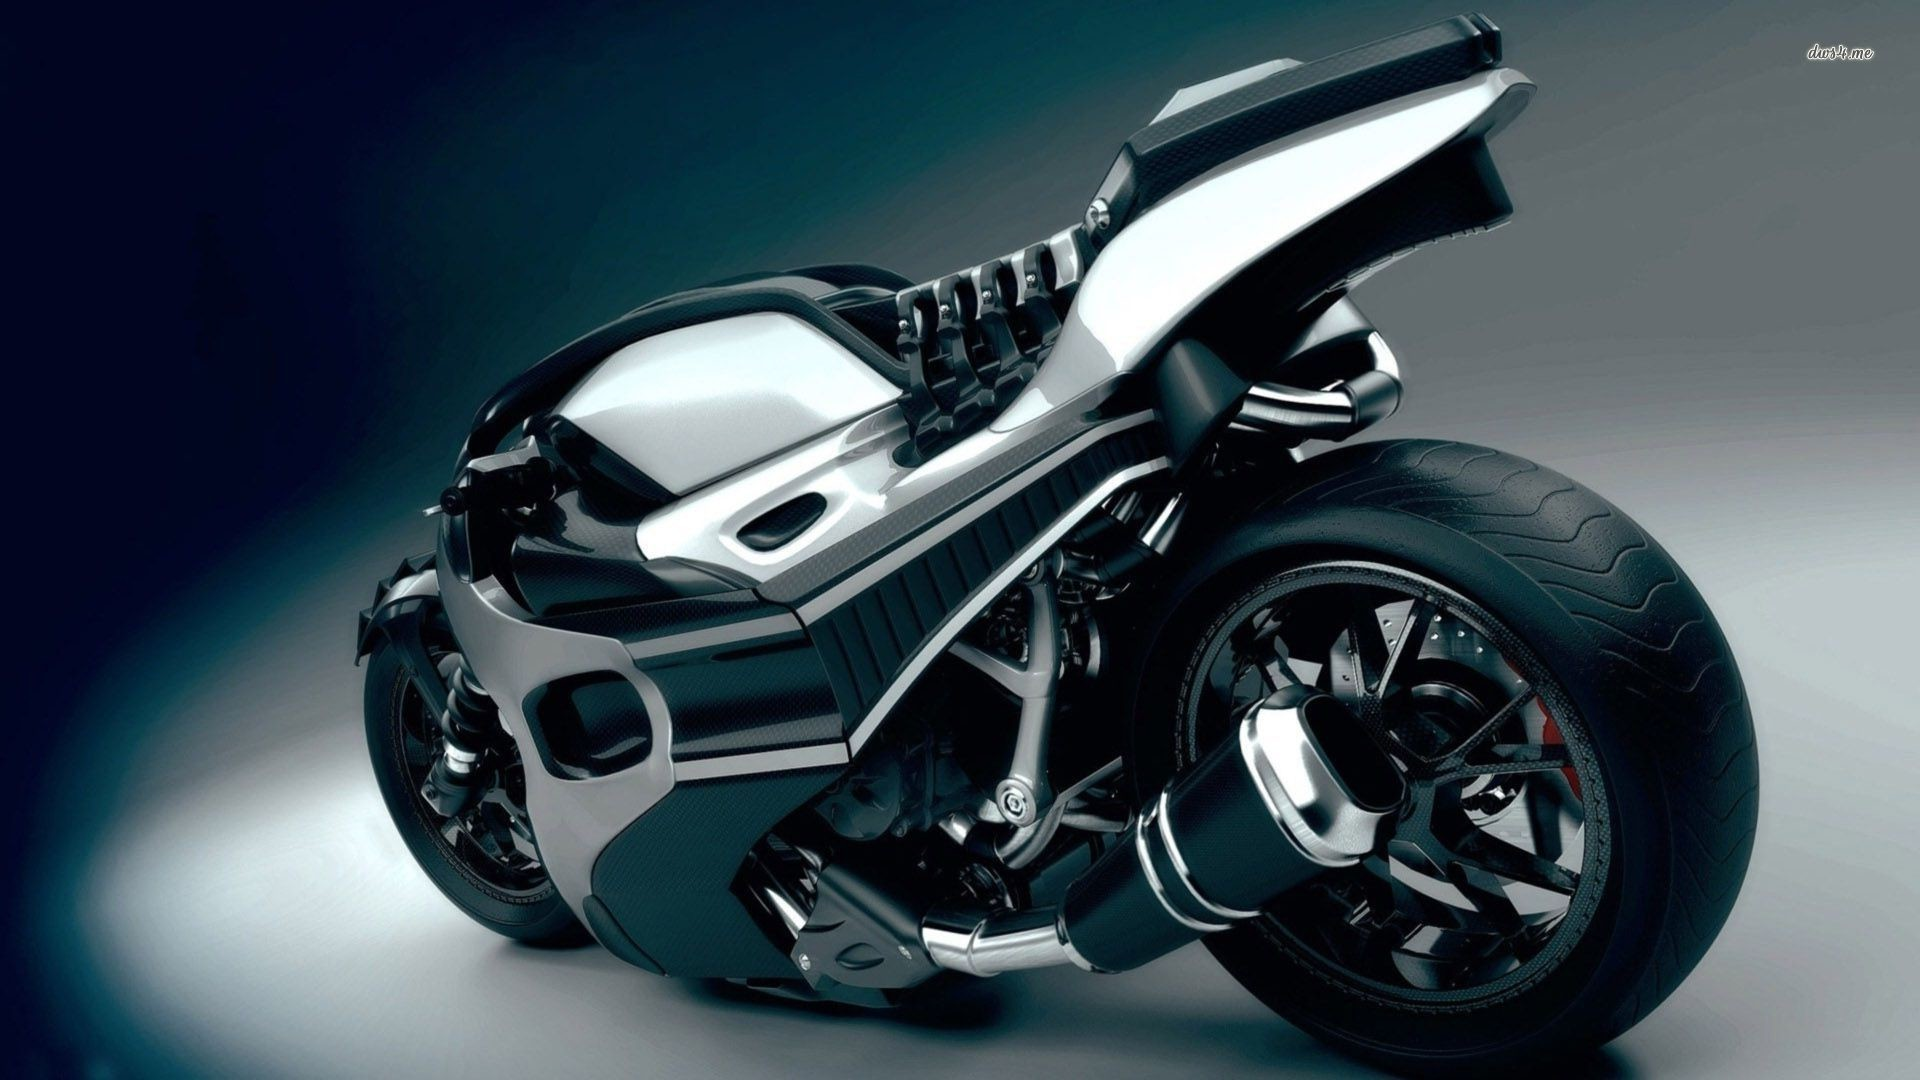 Res: 1920x1080, undefined Yamaha R1 Wallpapers (50 Wallpapers) | Adorable Wallpapers